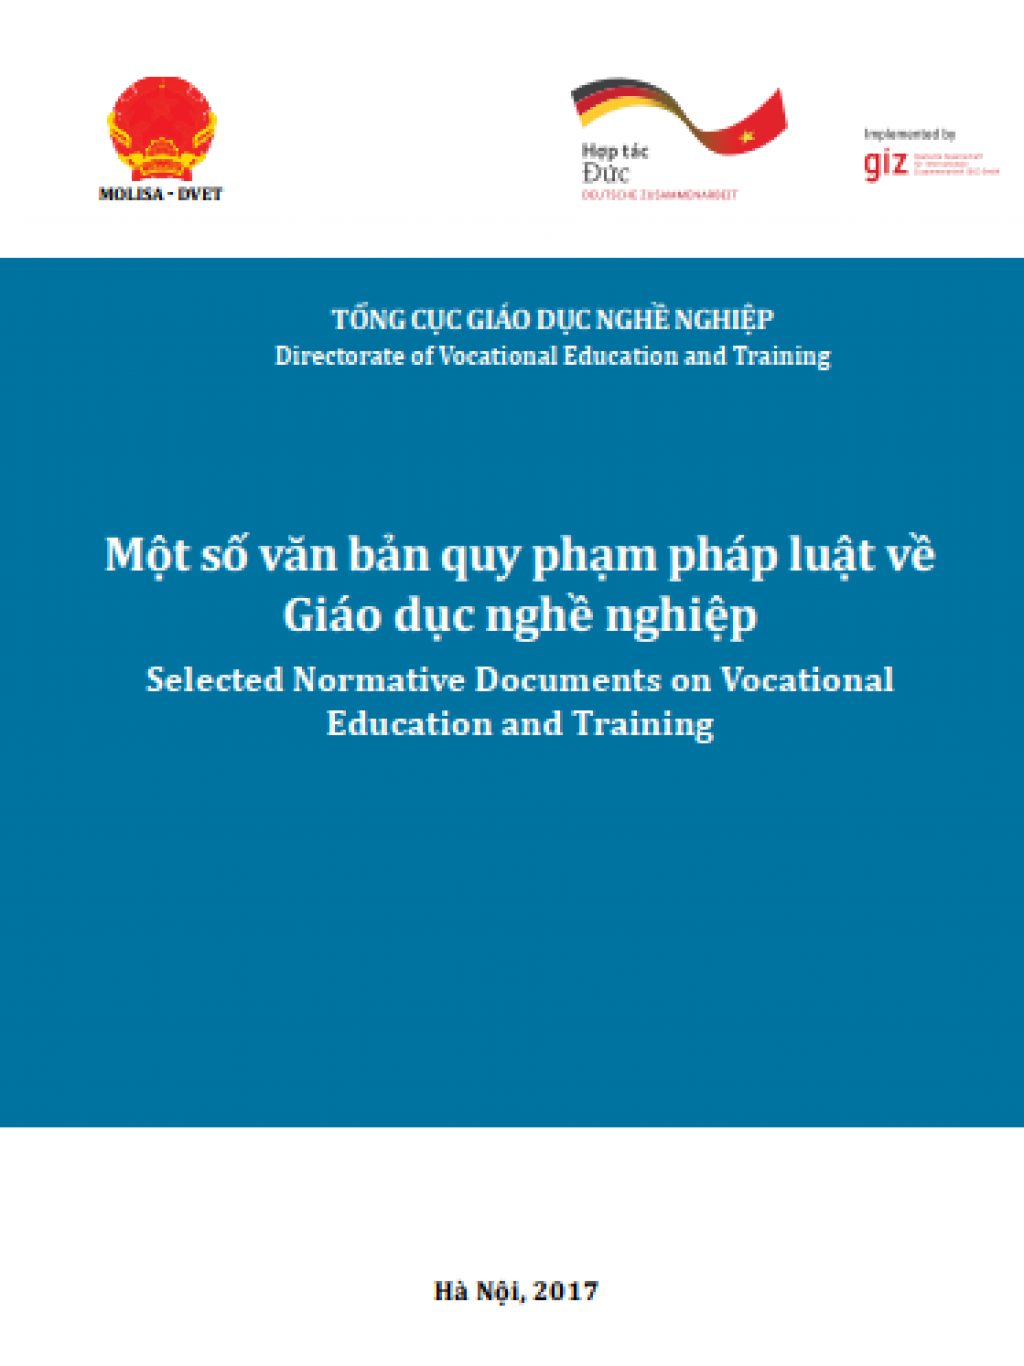 Selected Normative Documents on Vocational Education and Training